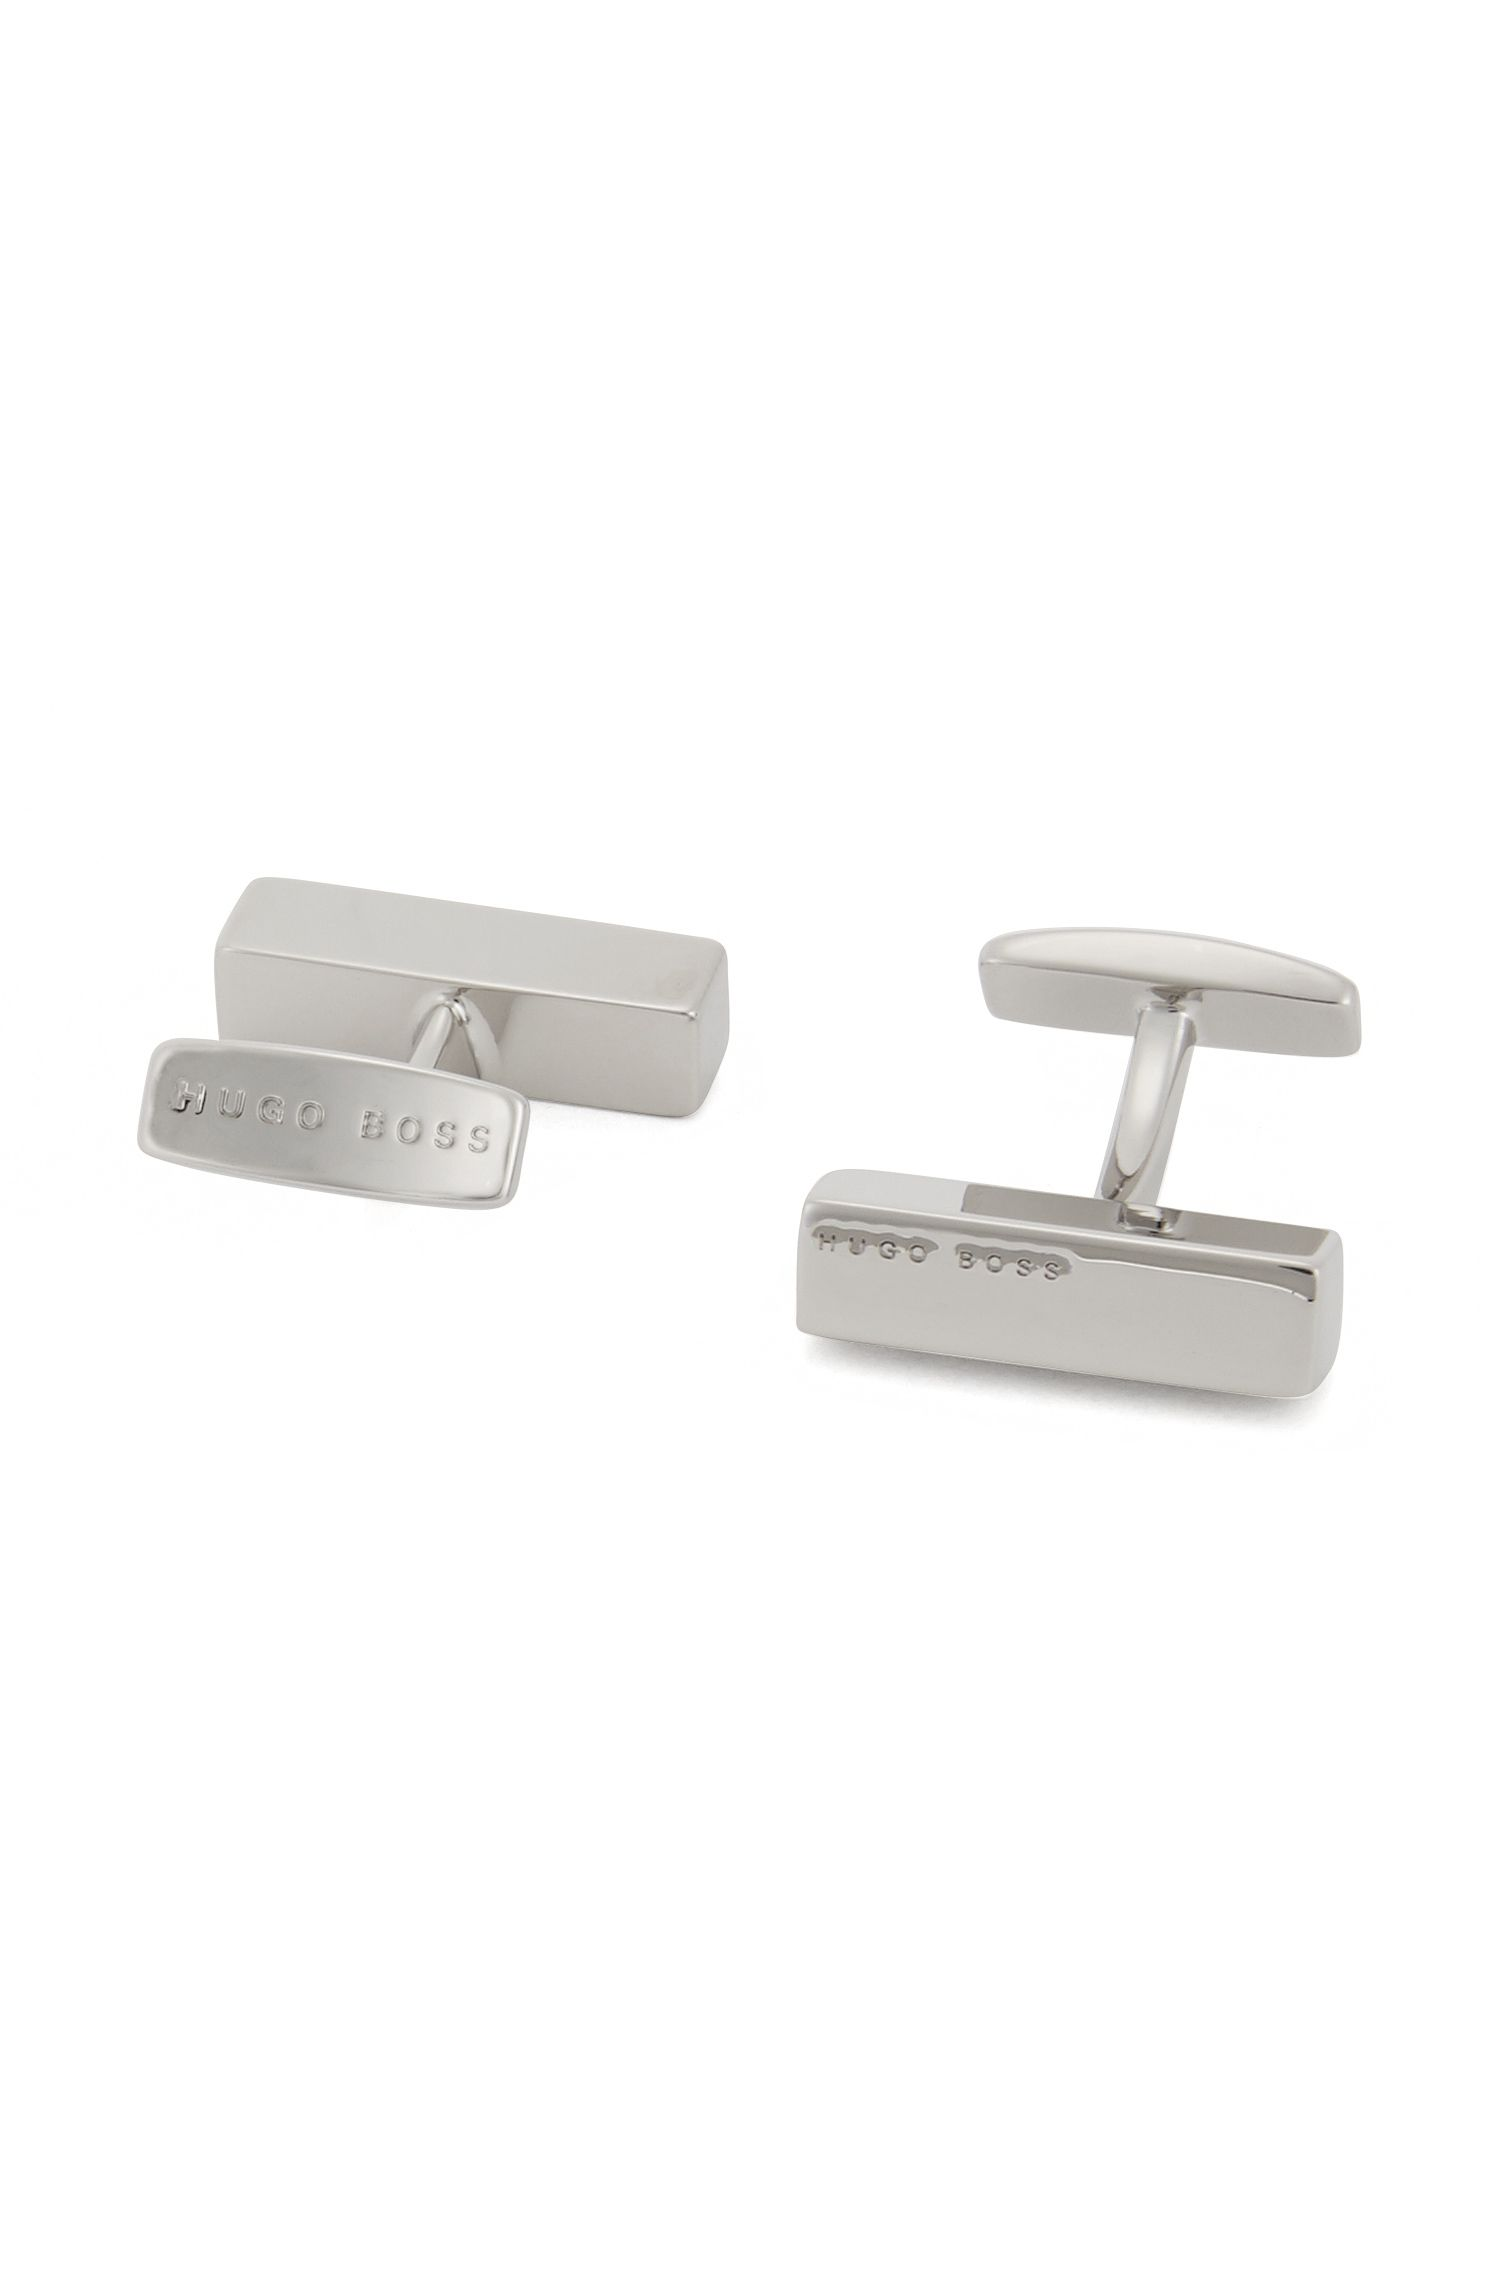 Brass tie clip and cufflinks gift set, Silver